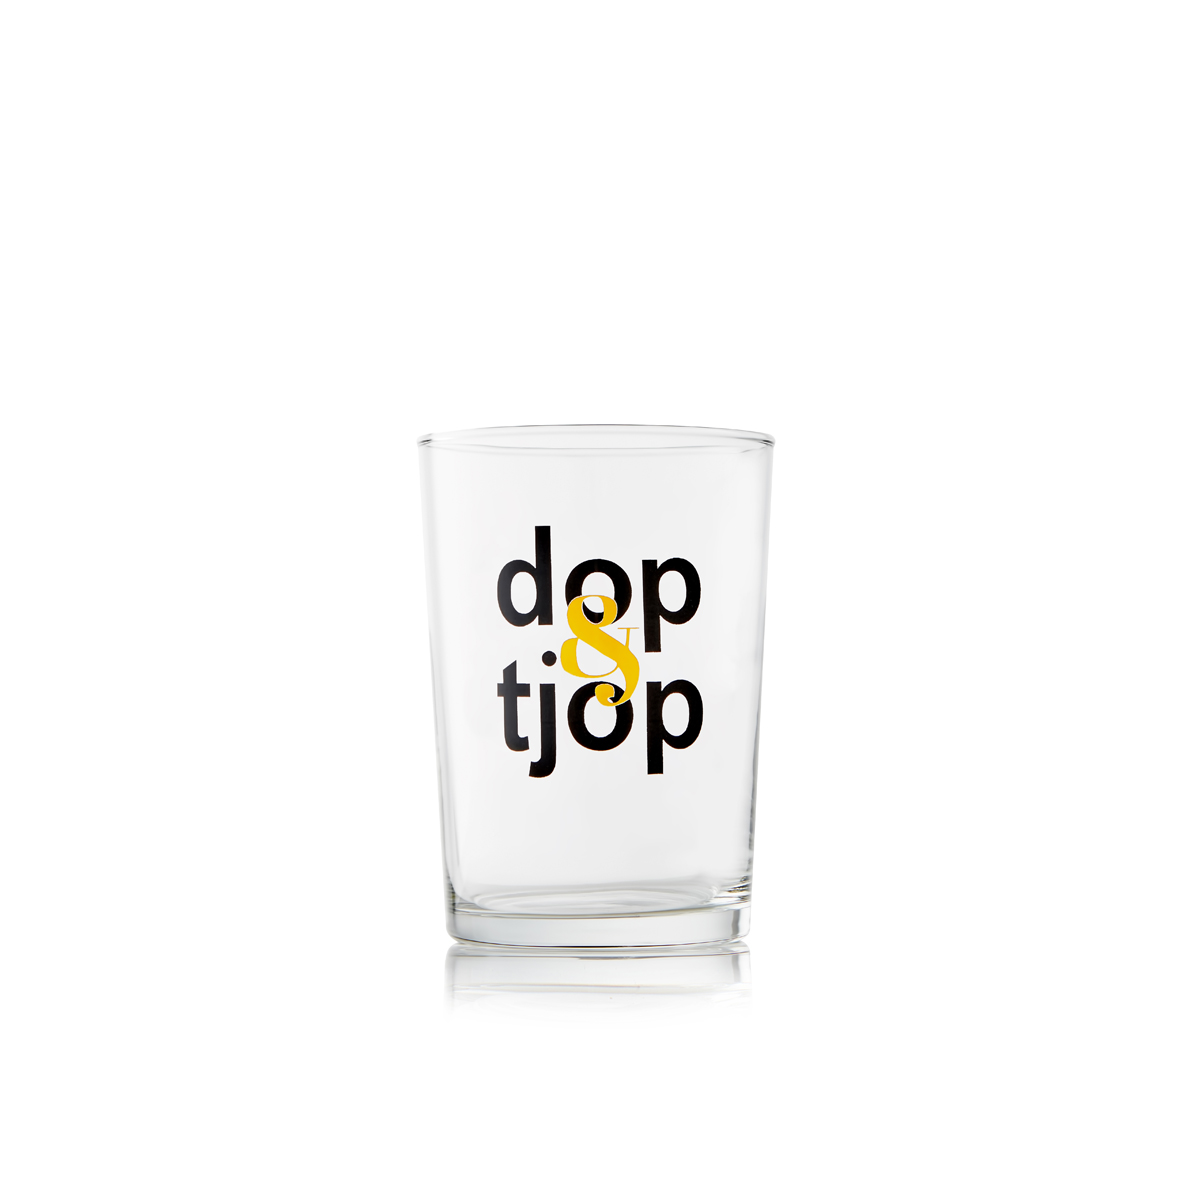 Brew Glass - Dop & Tjop